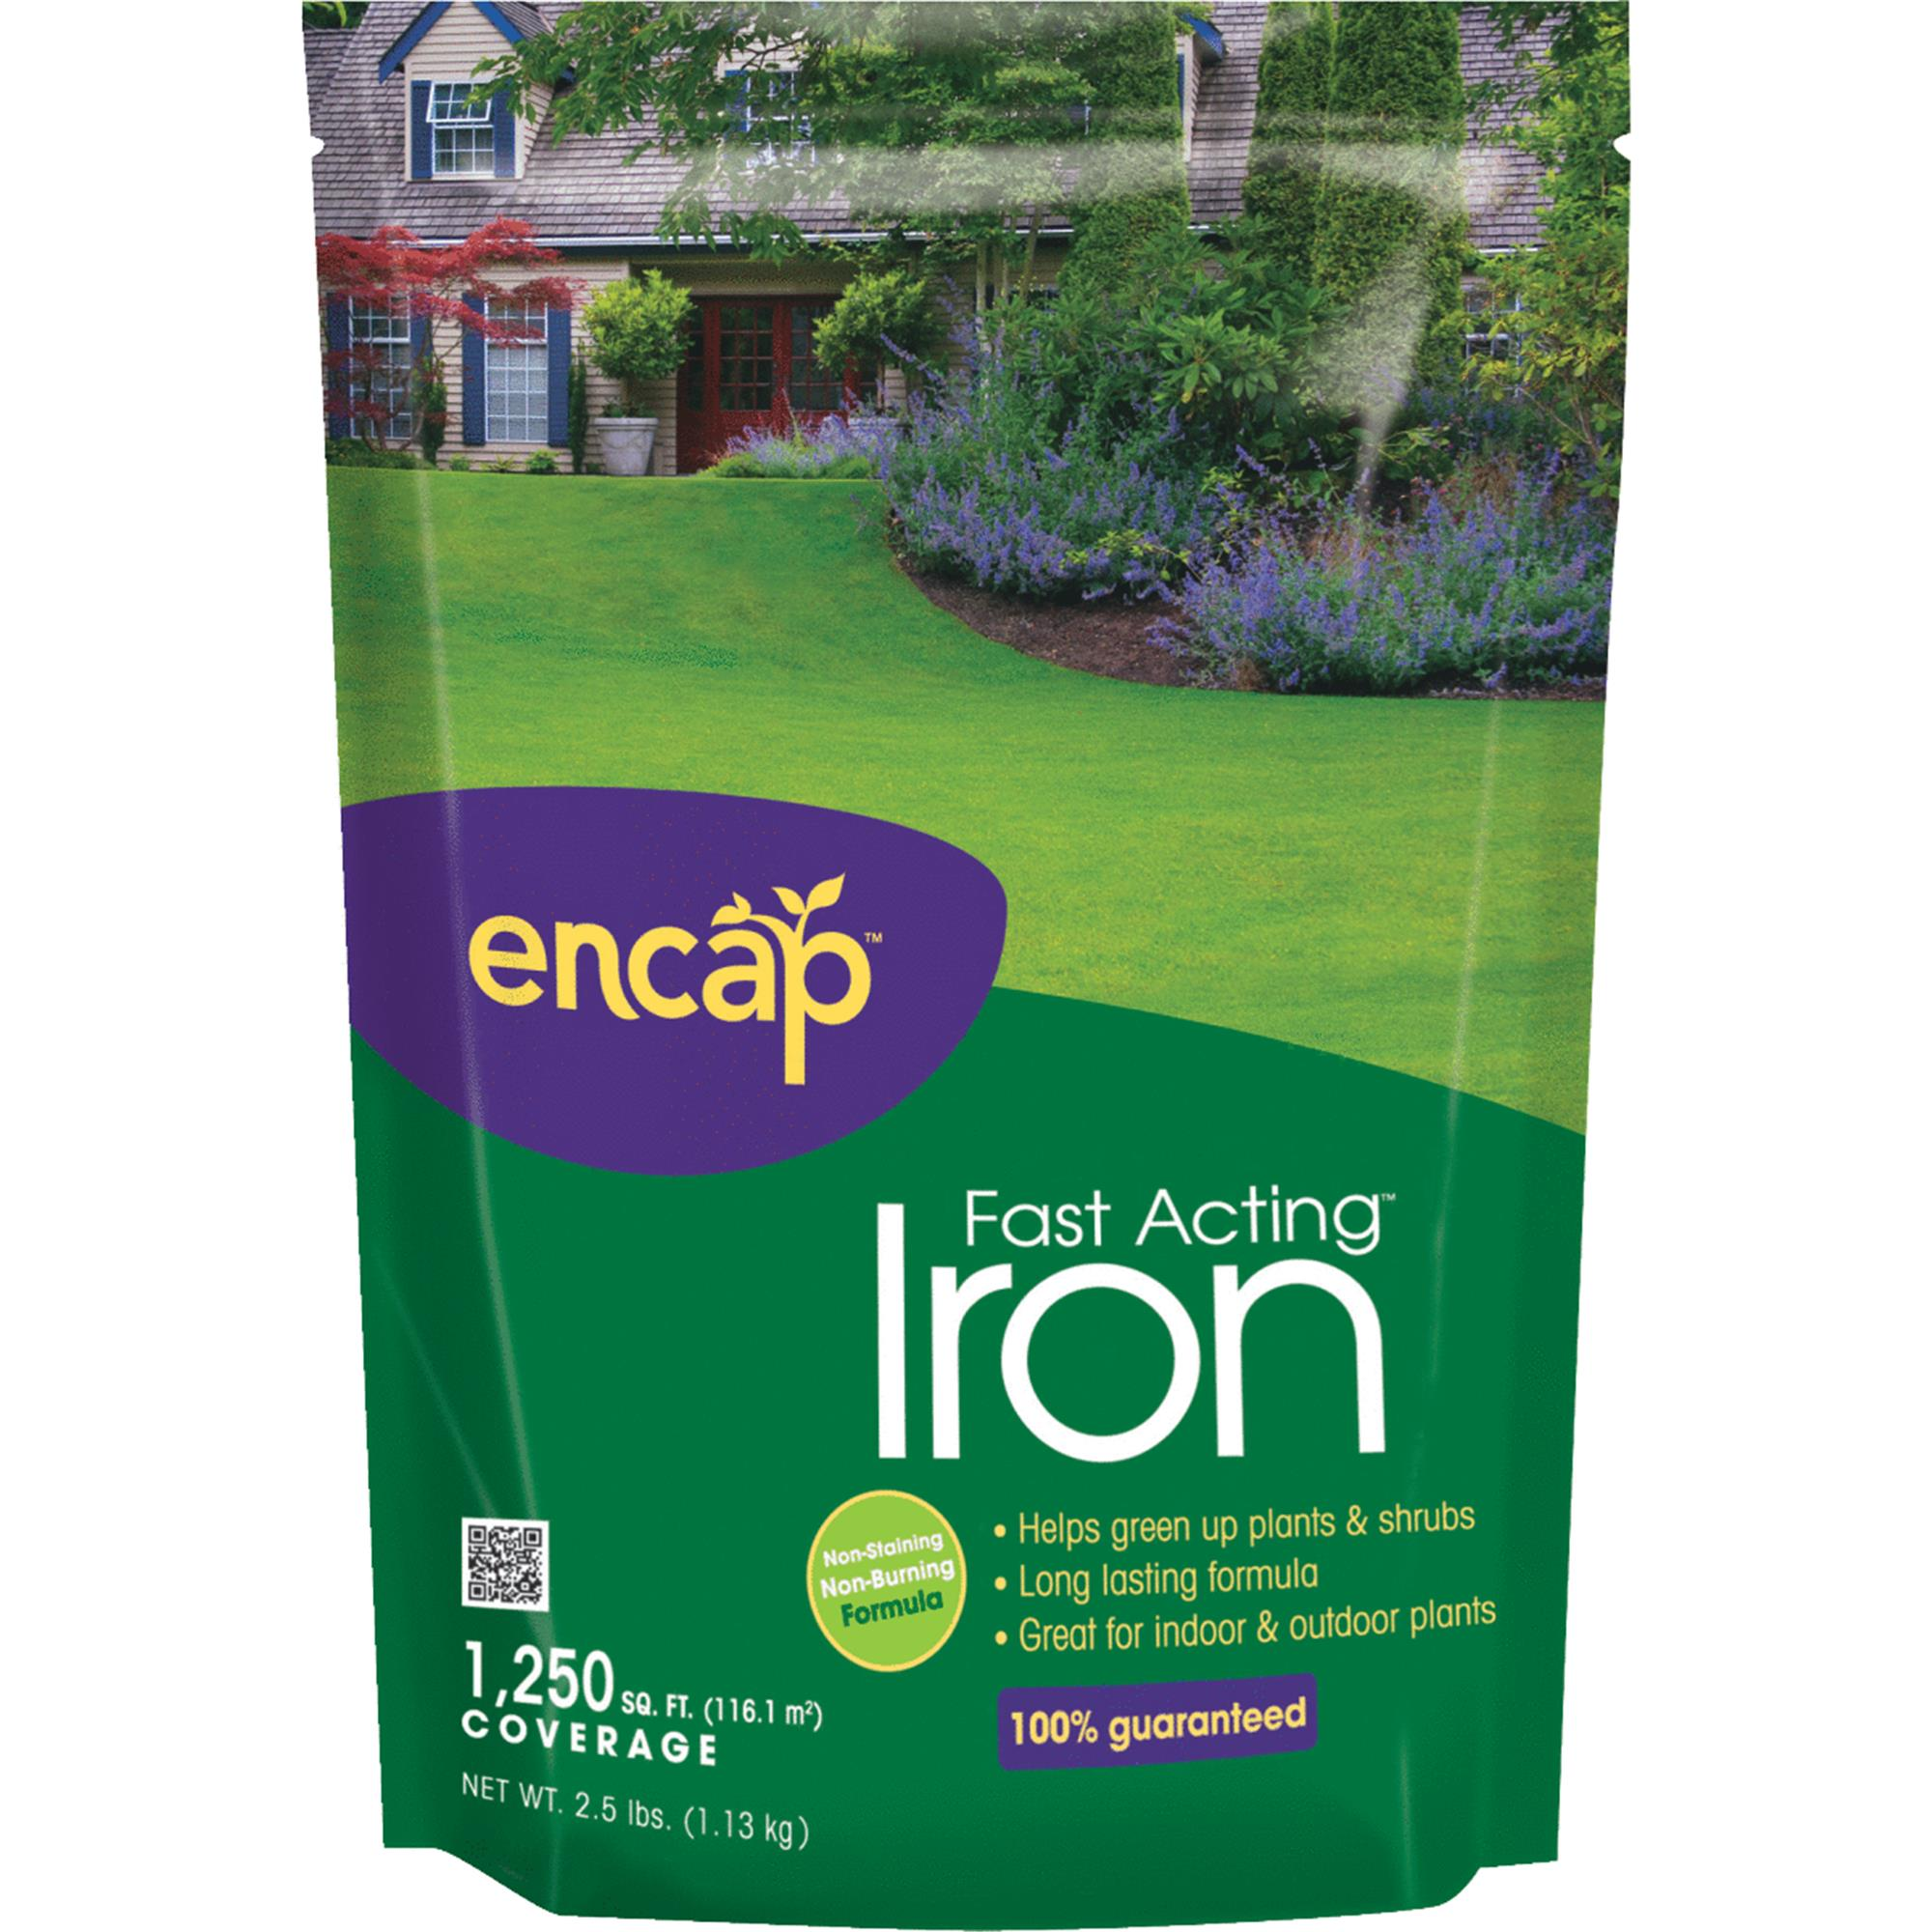 Encap Fast Acting Iron, 2.5lbs (1250sq ft Coverage)